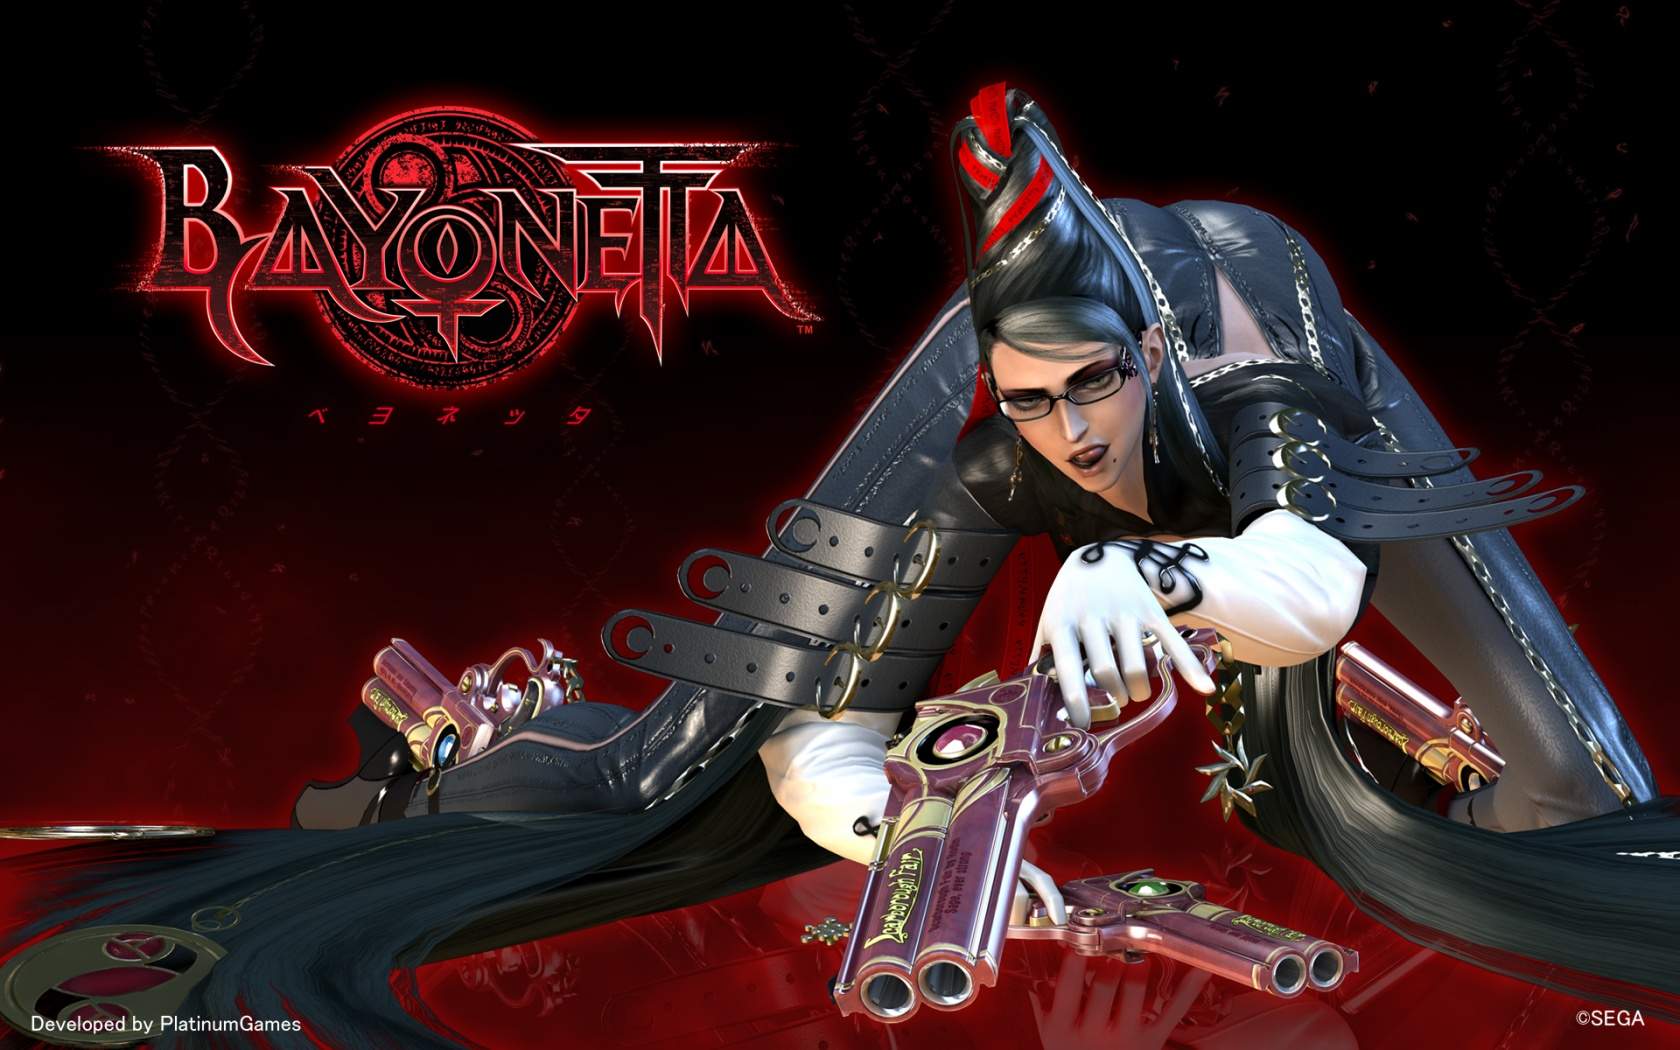 bayonetta_wallpaper_cat_131209-1680x1050